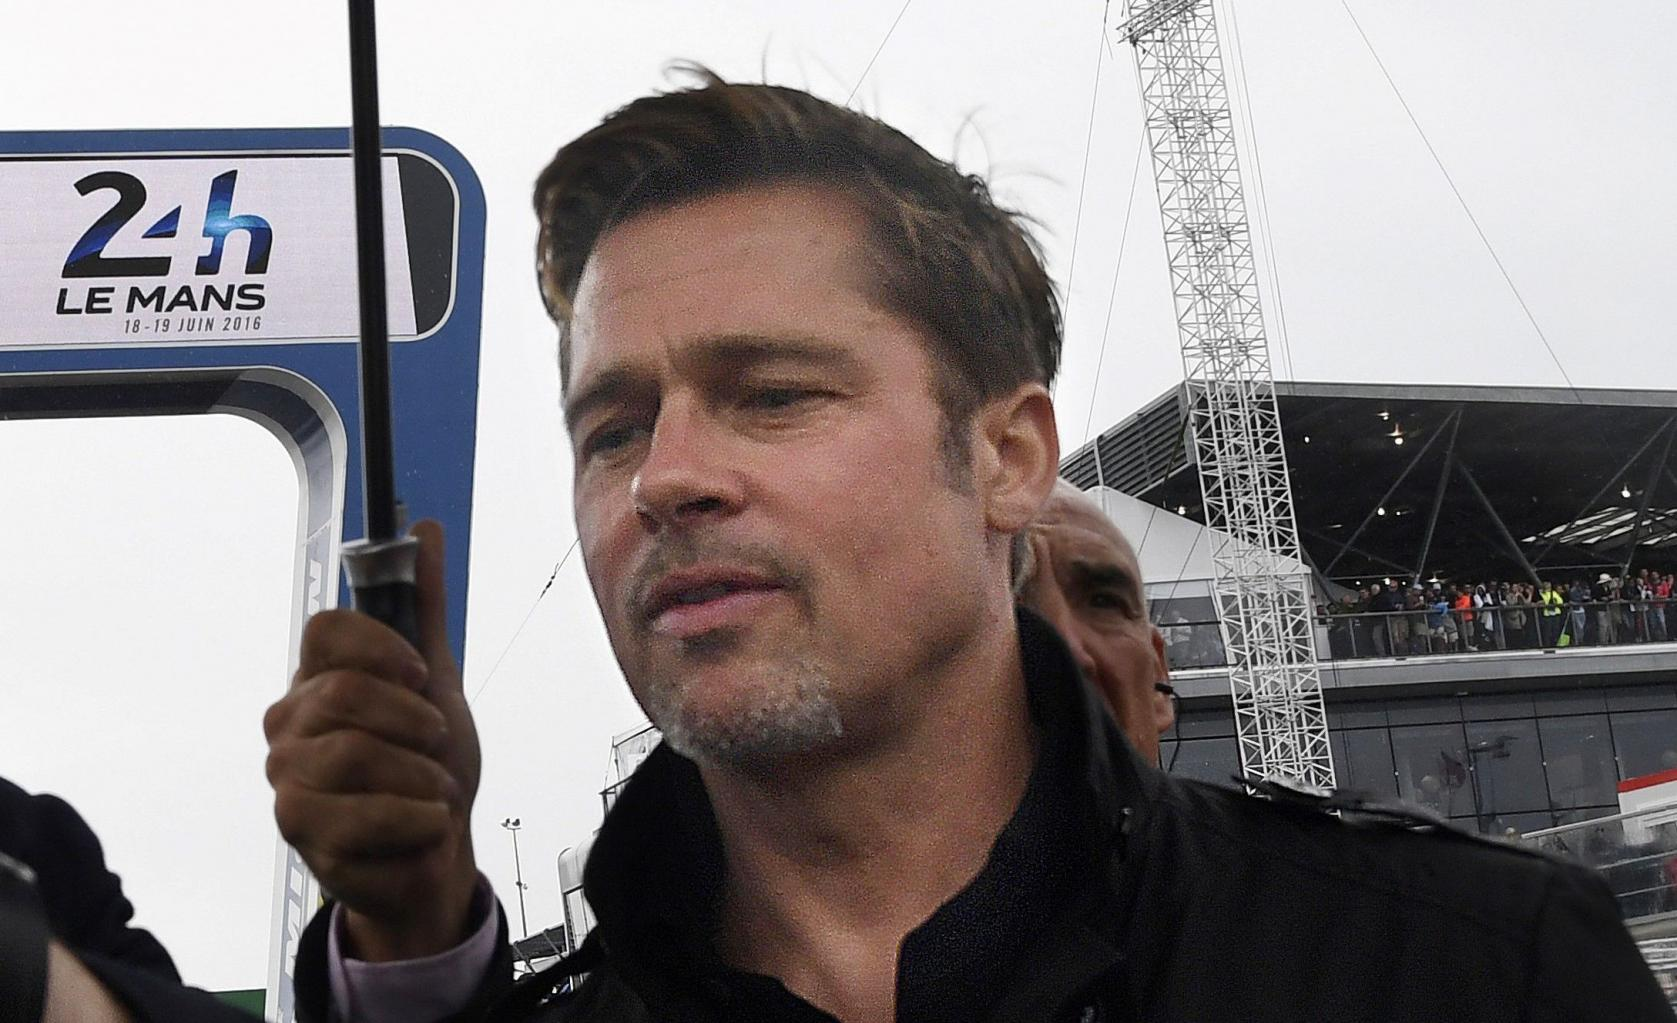 Brad Pitt Lawyers Up For Divorce Battle, Hires Charlie Sheen's Attorney